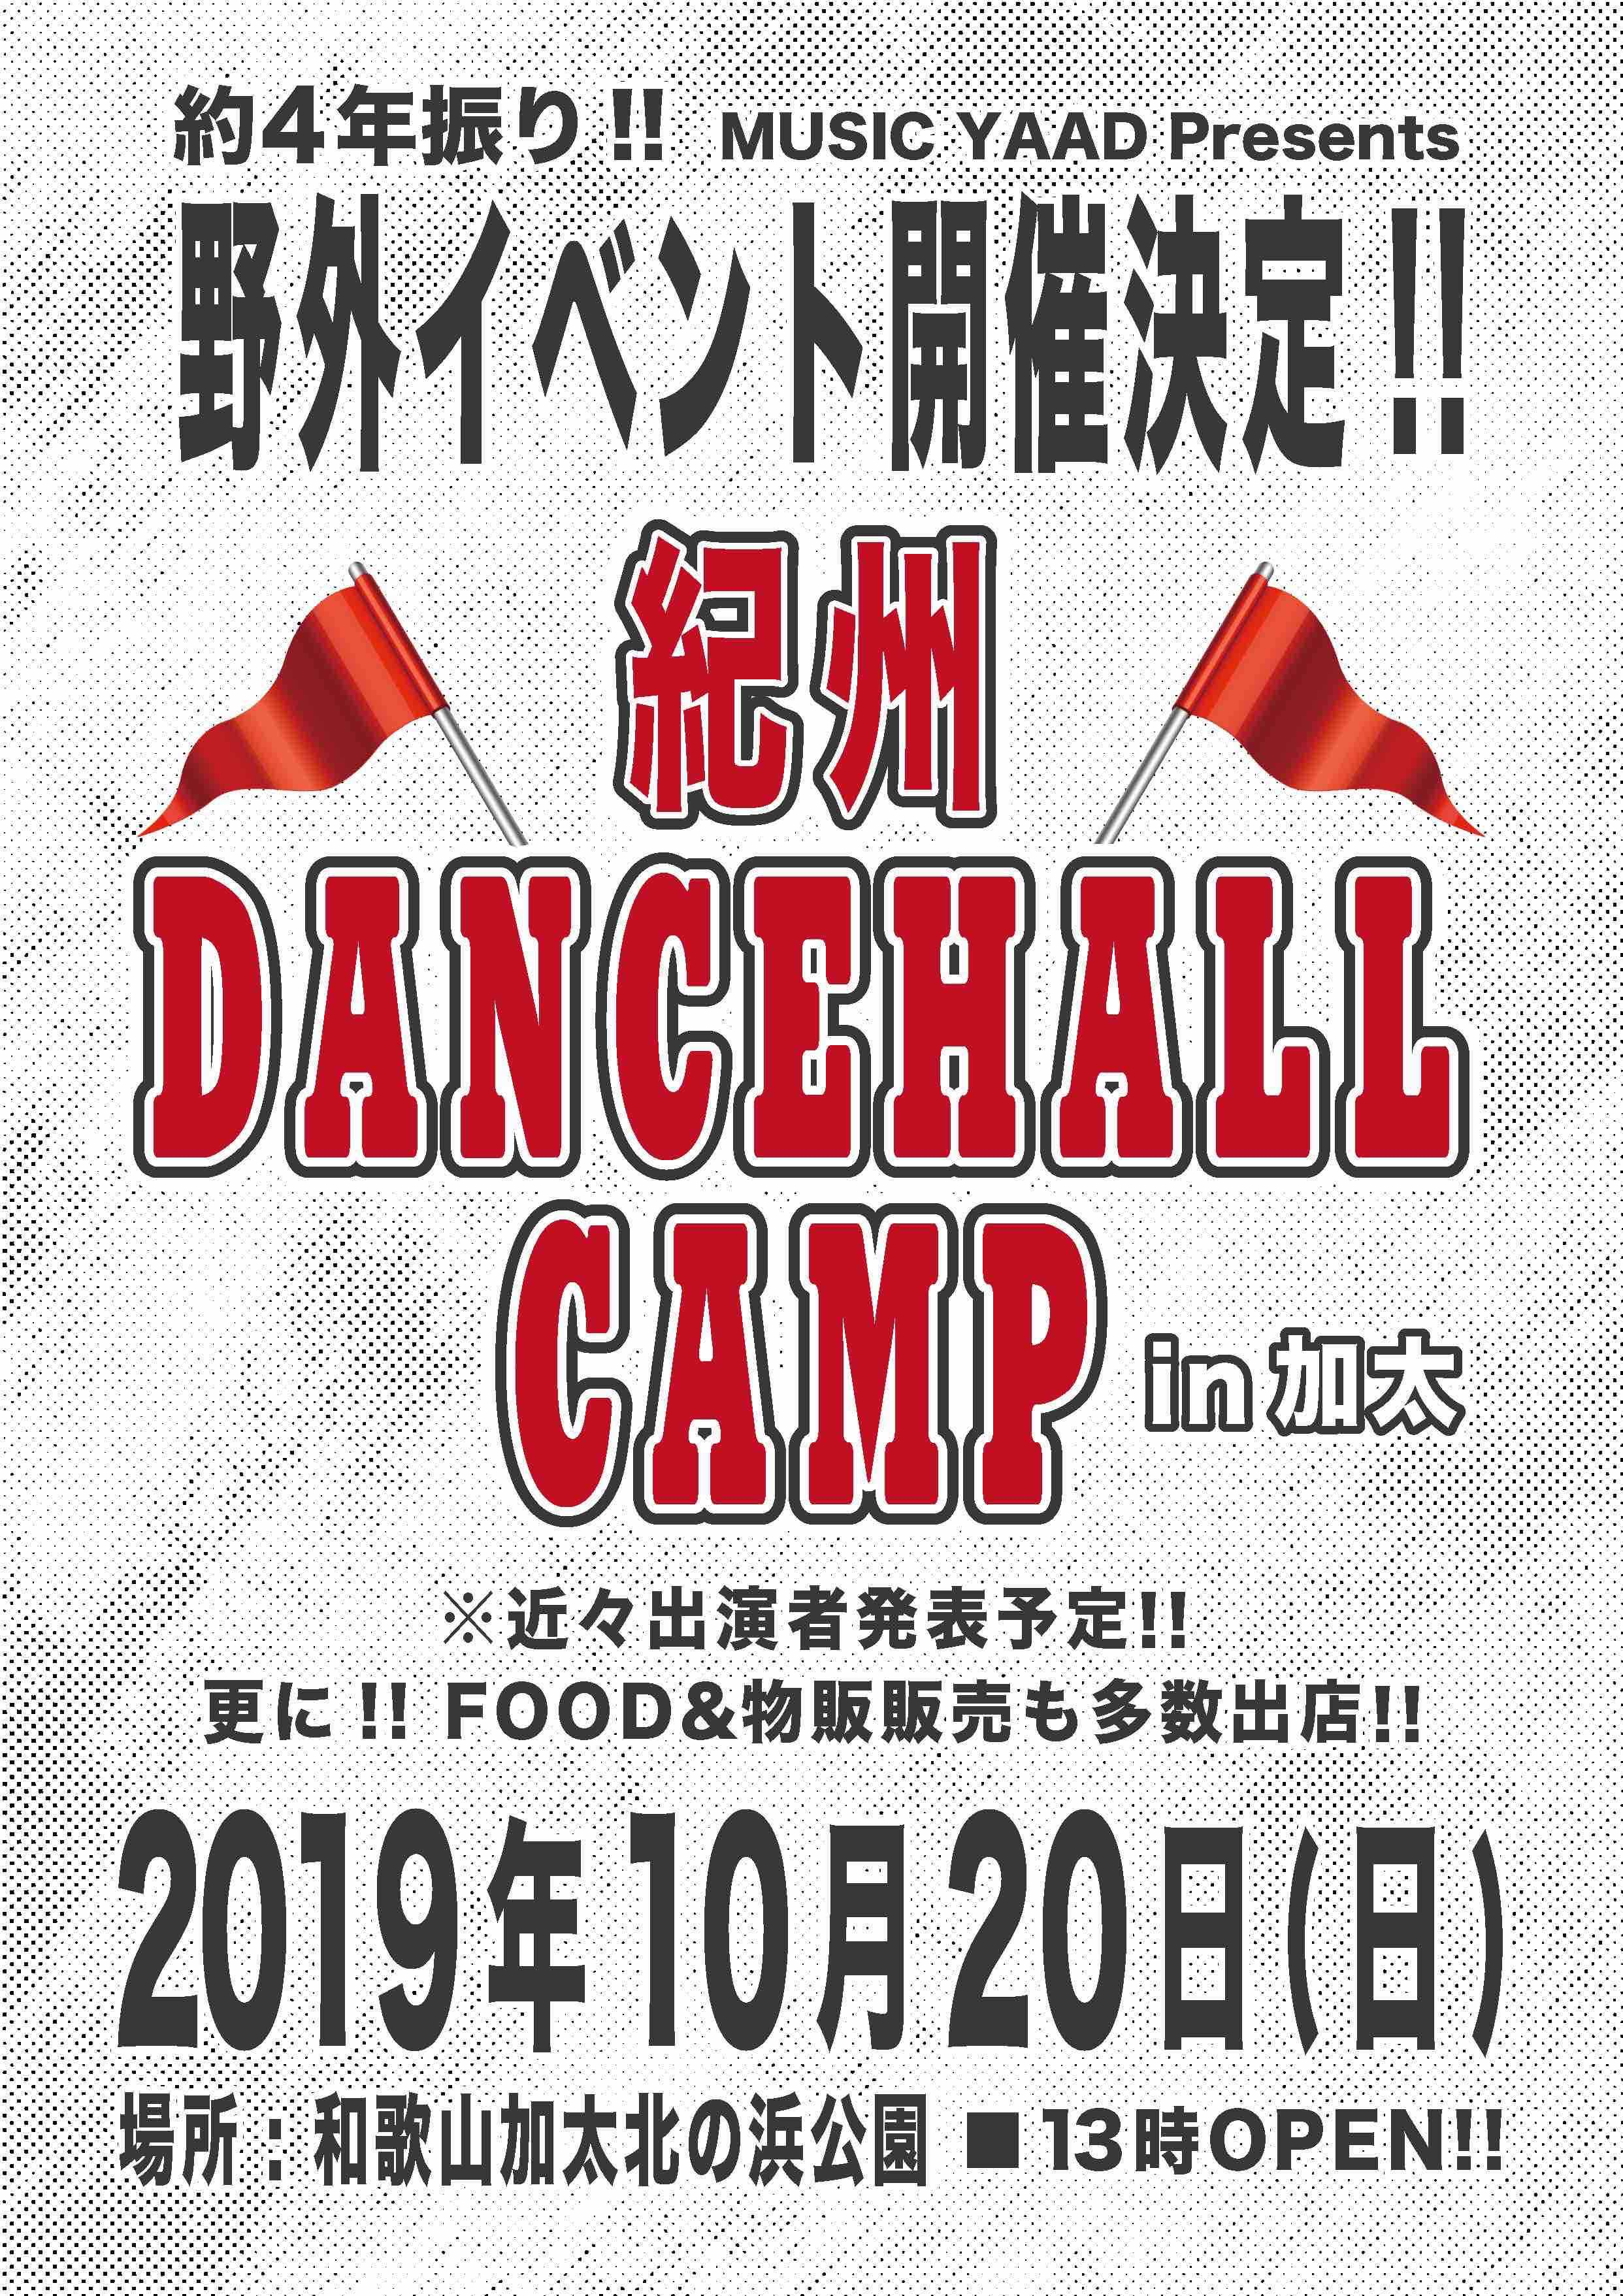 MUSIC YAAD Presents  『紀州 DANCEHALL CAMP 2019 in 加太』